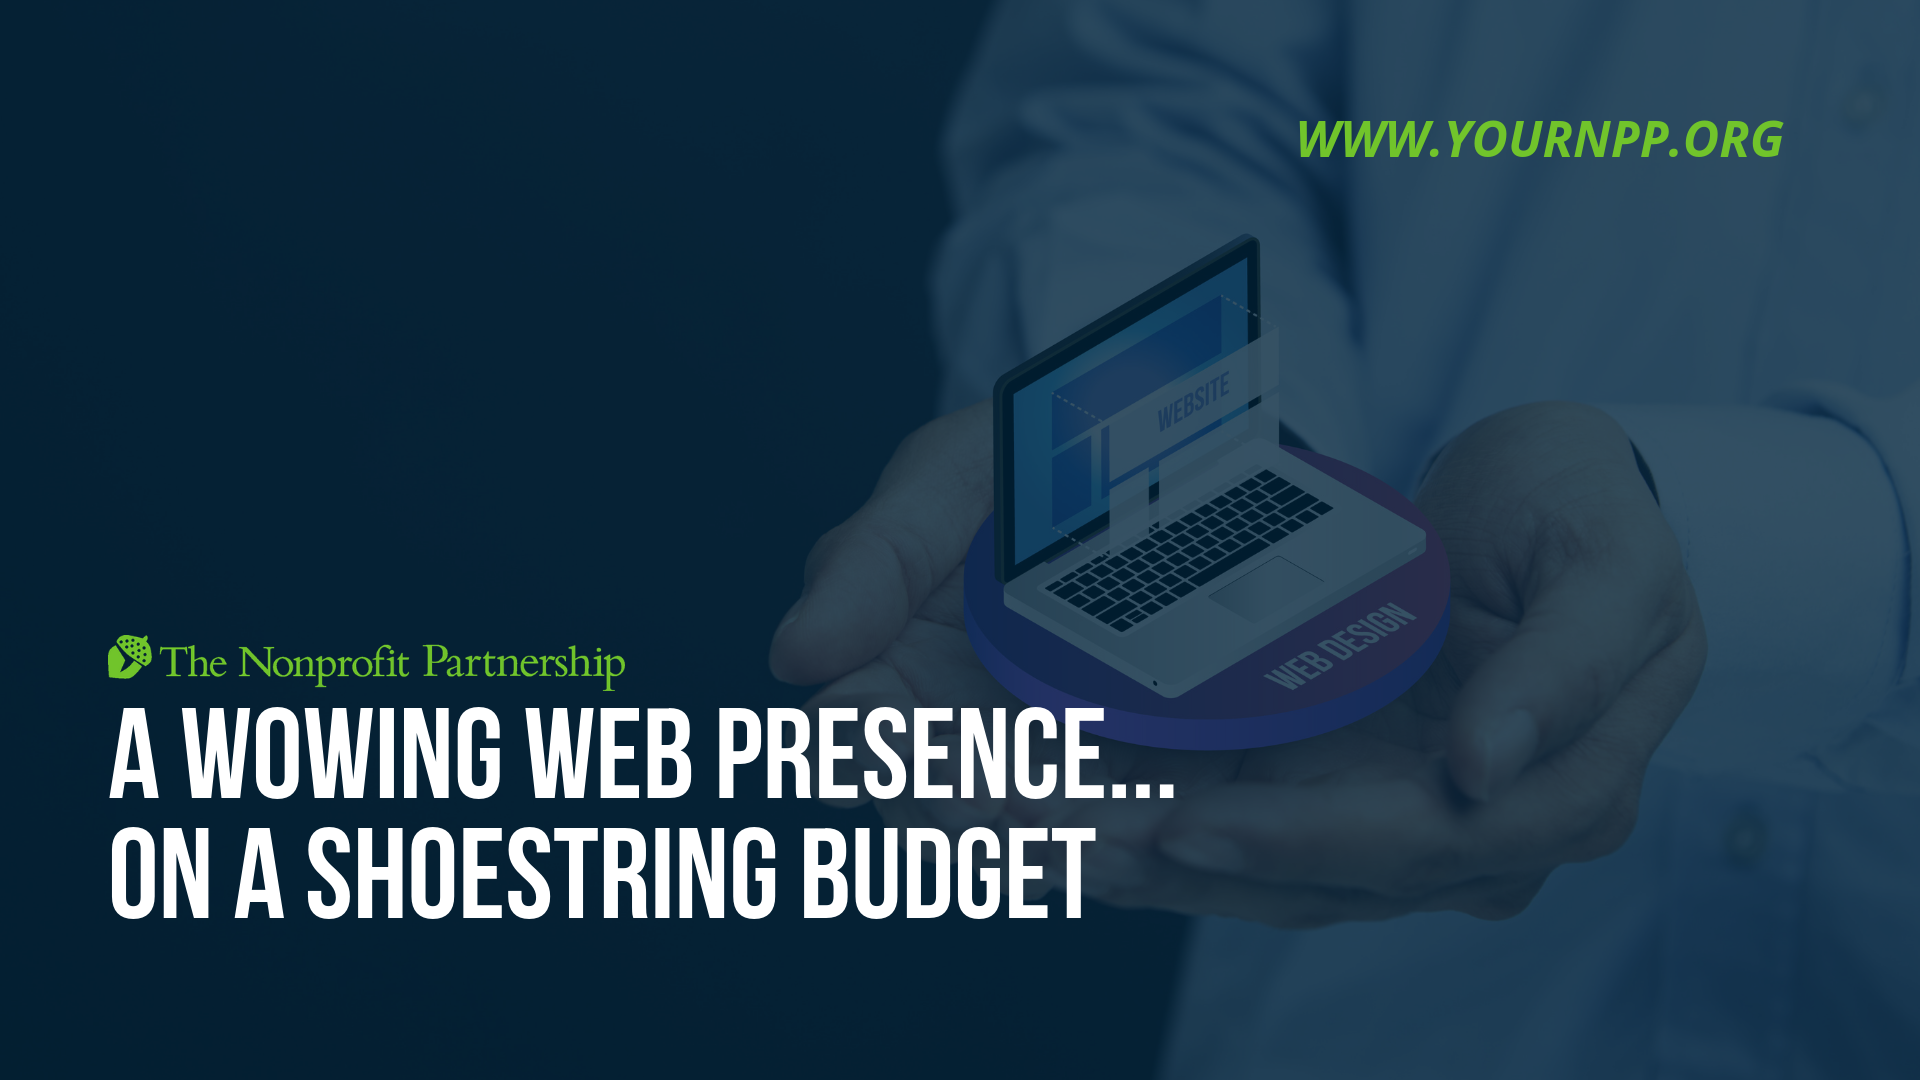 A Wowing Web Presence... on a Shoestring Budget